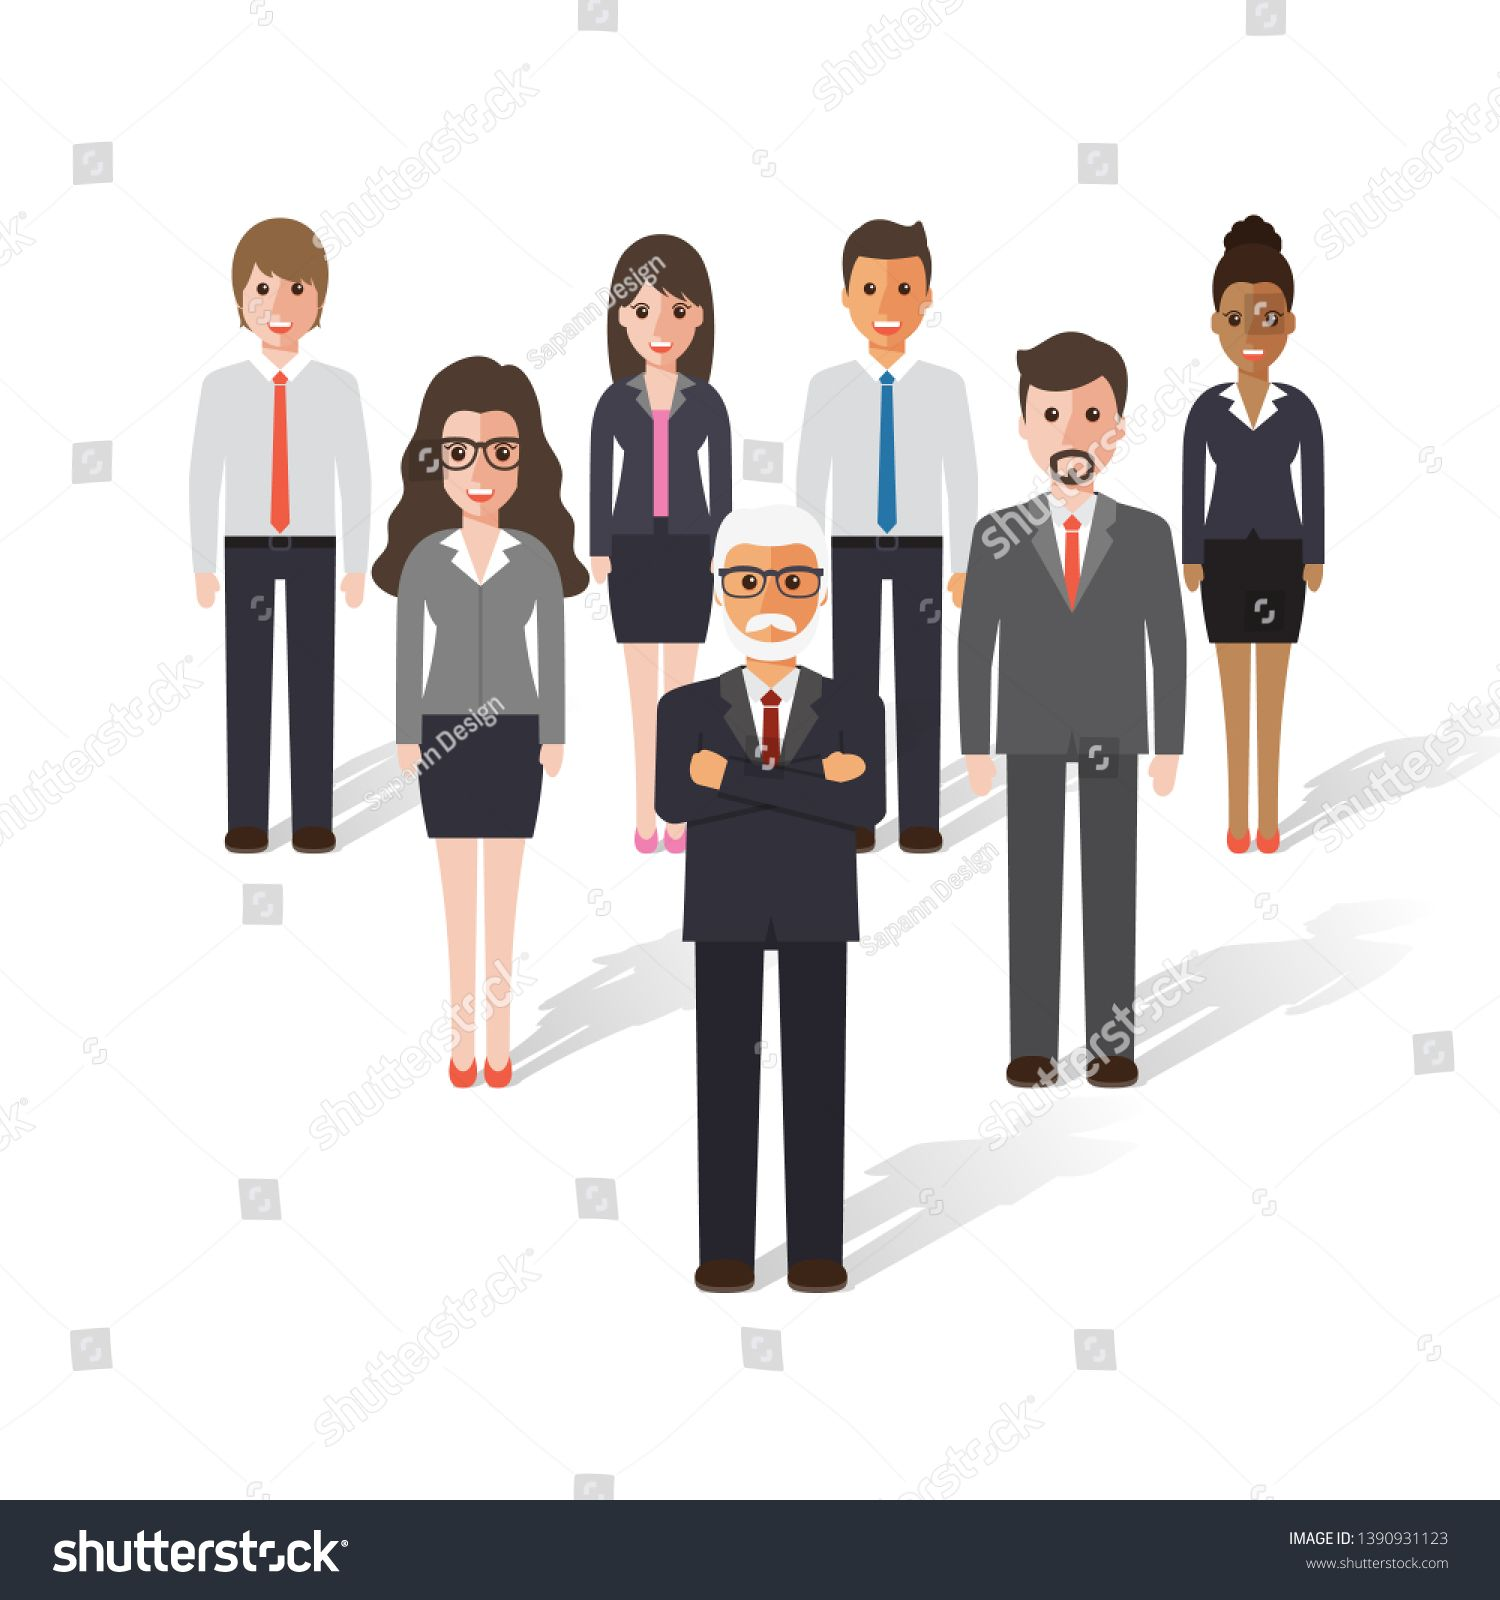 Business People Silhouettes Business Man Silhouette Figures